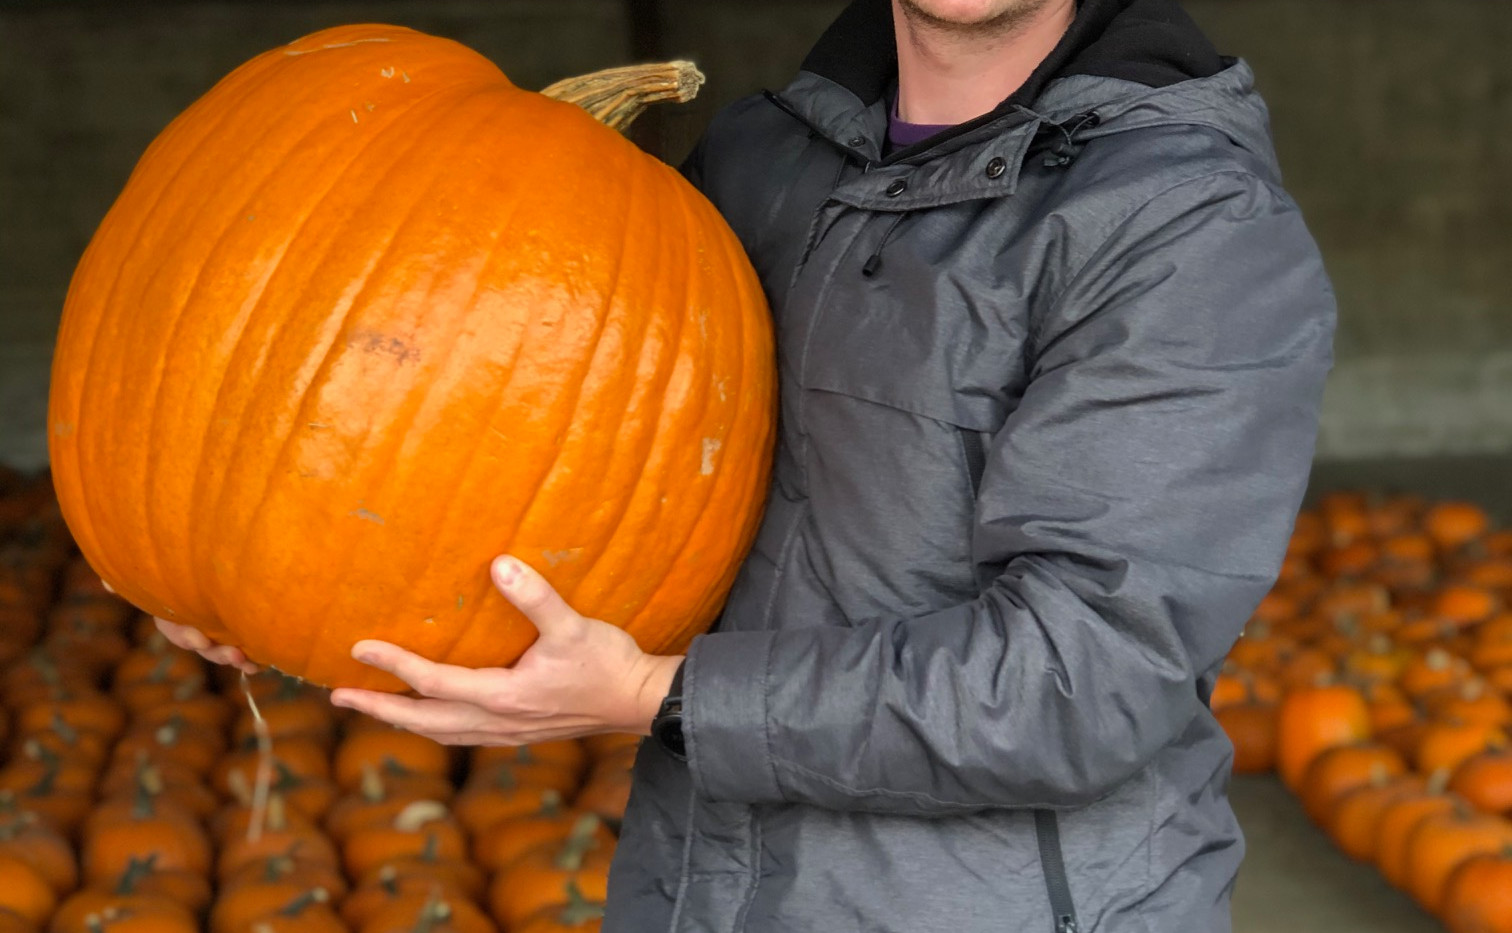 This Customer Proving his Strength with a Monster Pumpkin